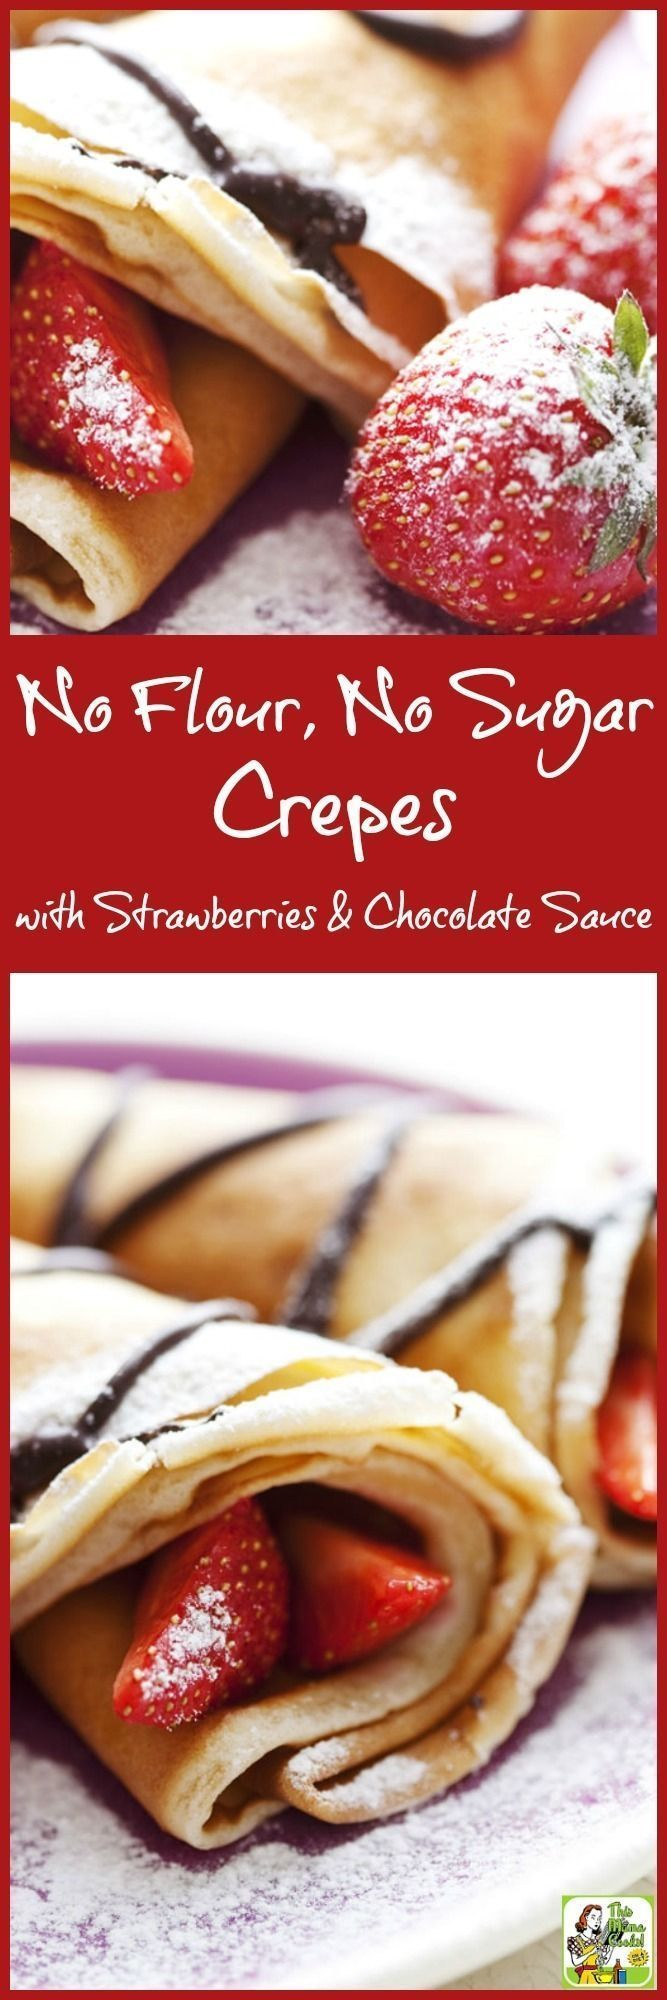 Looking for a gluten free crepe recipe? Try this easy No Flour, No Sugar Crepes with Strawberries & Chocolate Sauce. It's the perfect healthy crepe recipe for Valentine's Day or Mother's Day. It's also a paleo crepe recipe with a few substitutions.